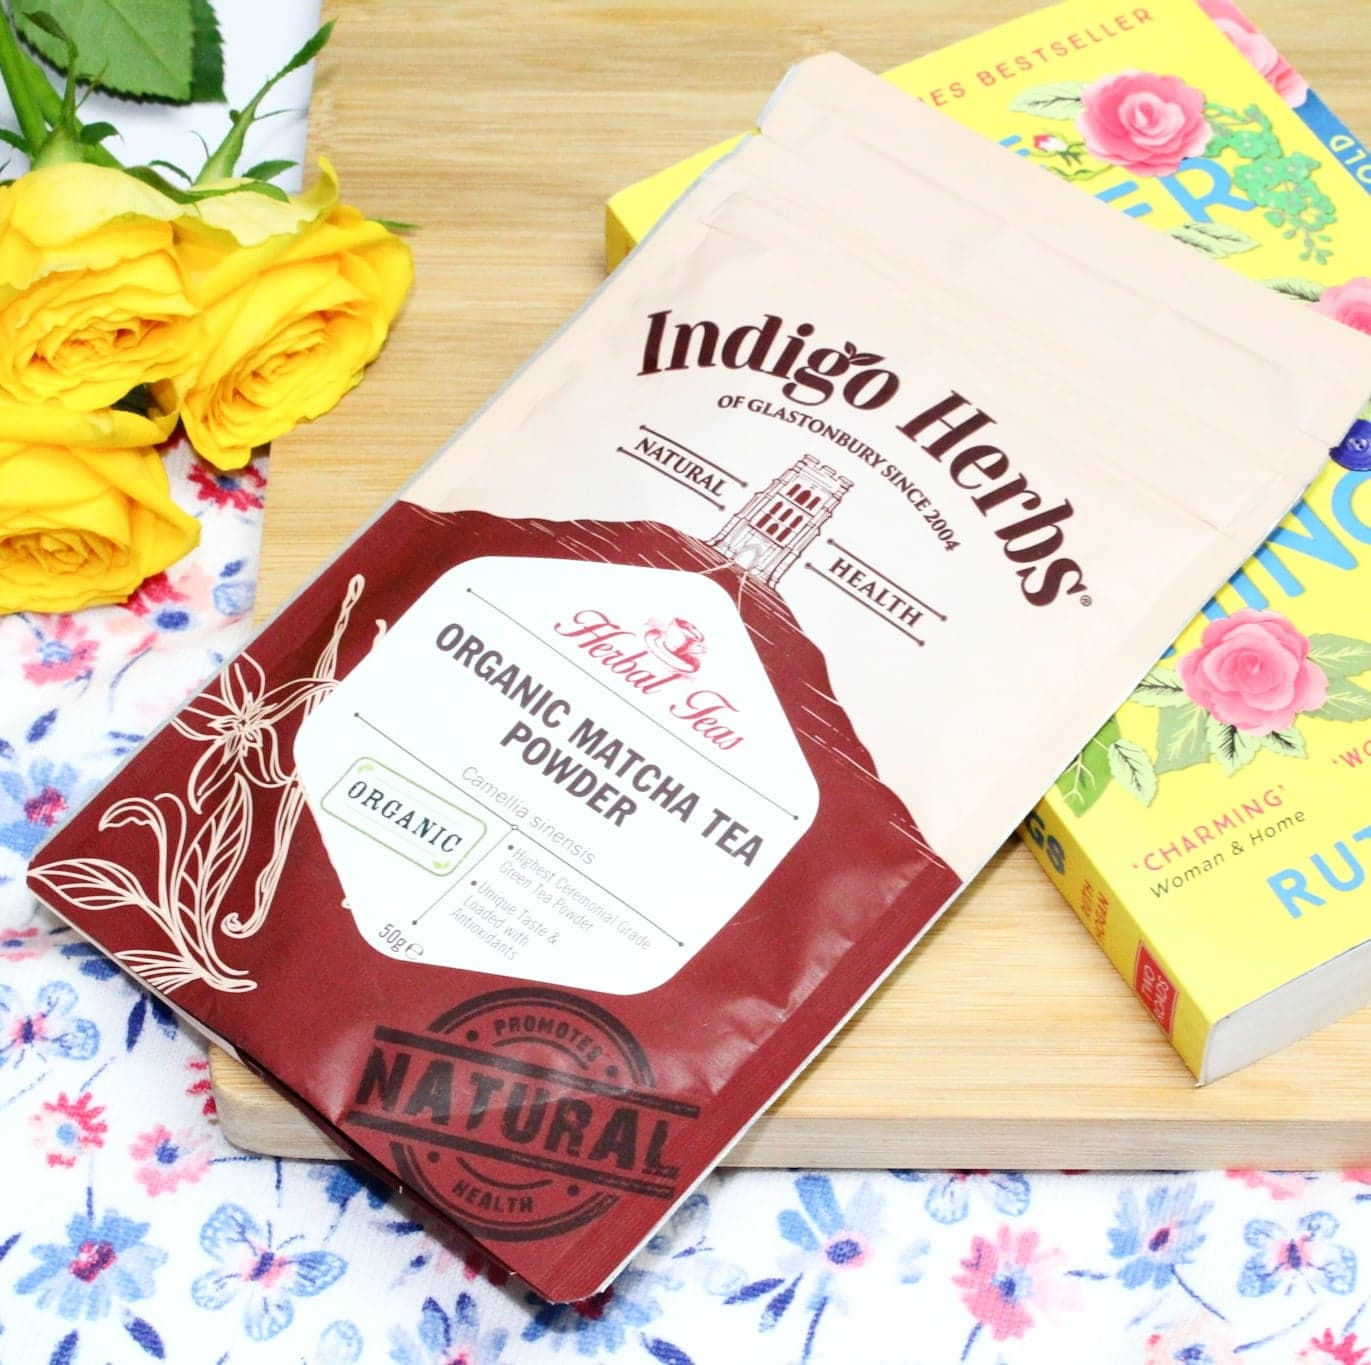 Indigo Herbs | Premium Quality Superfoods & Natural Pregnancy Essentials*